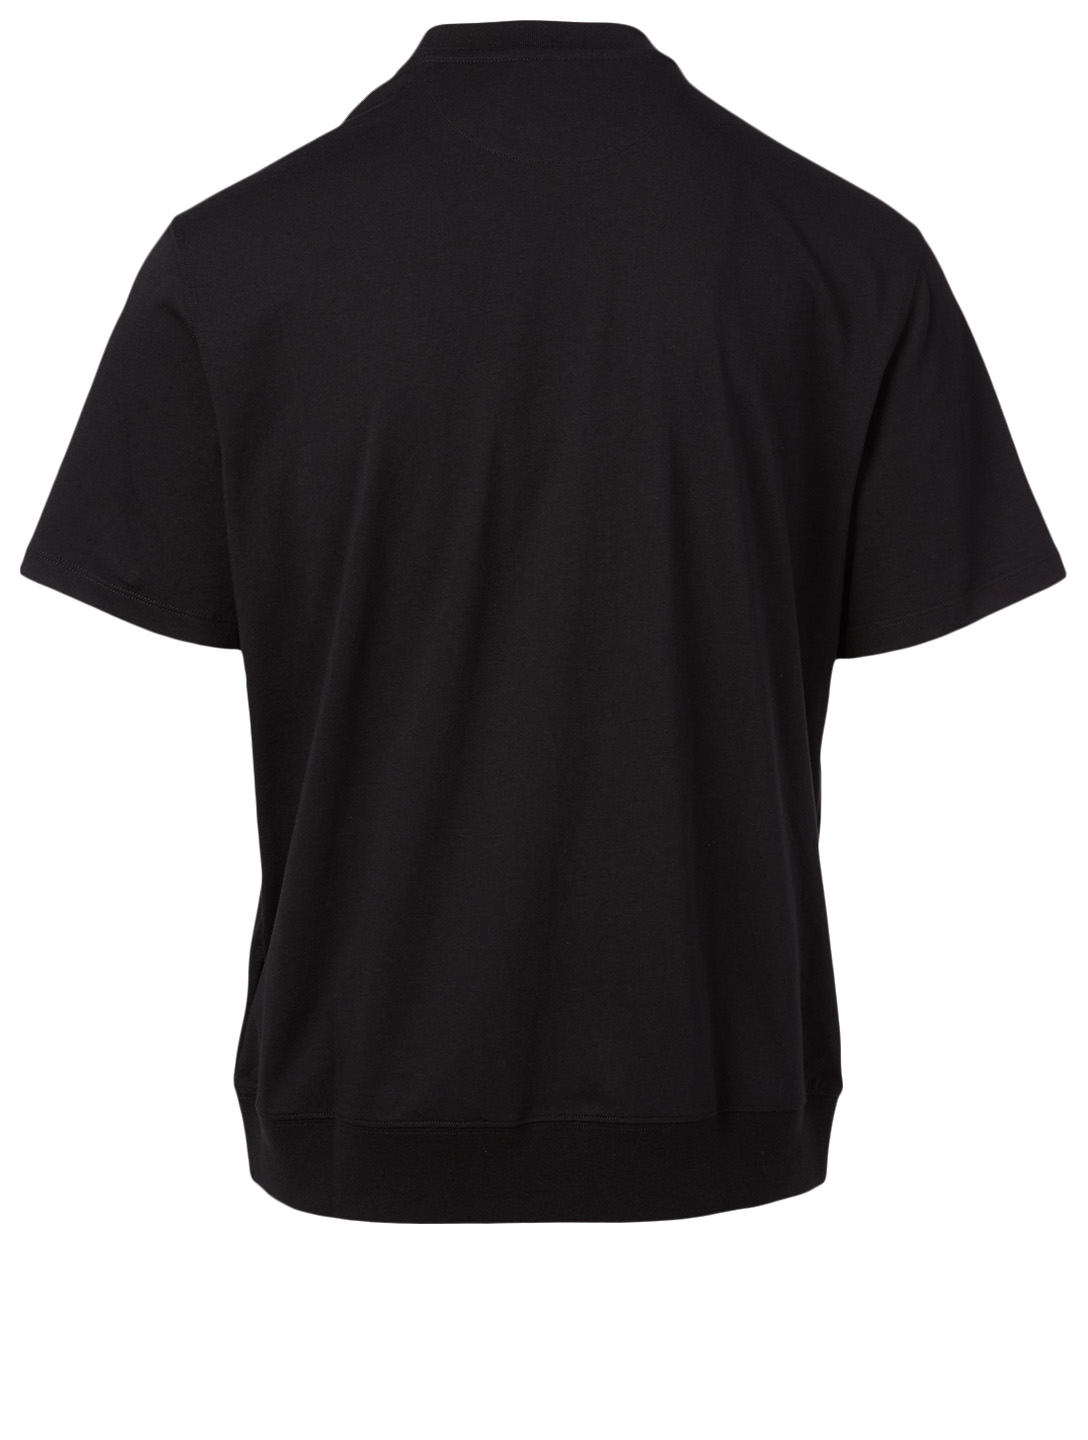 VALENTINO Cotton T-Shirt With Logo Collar Men's Black